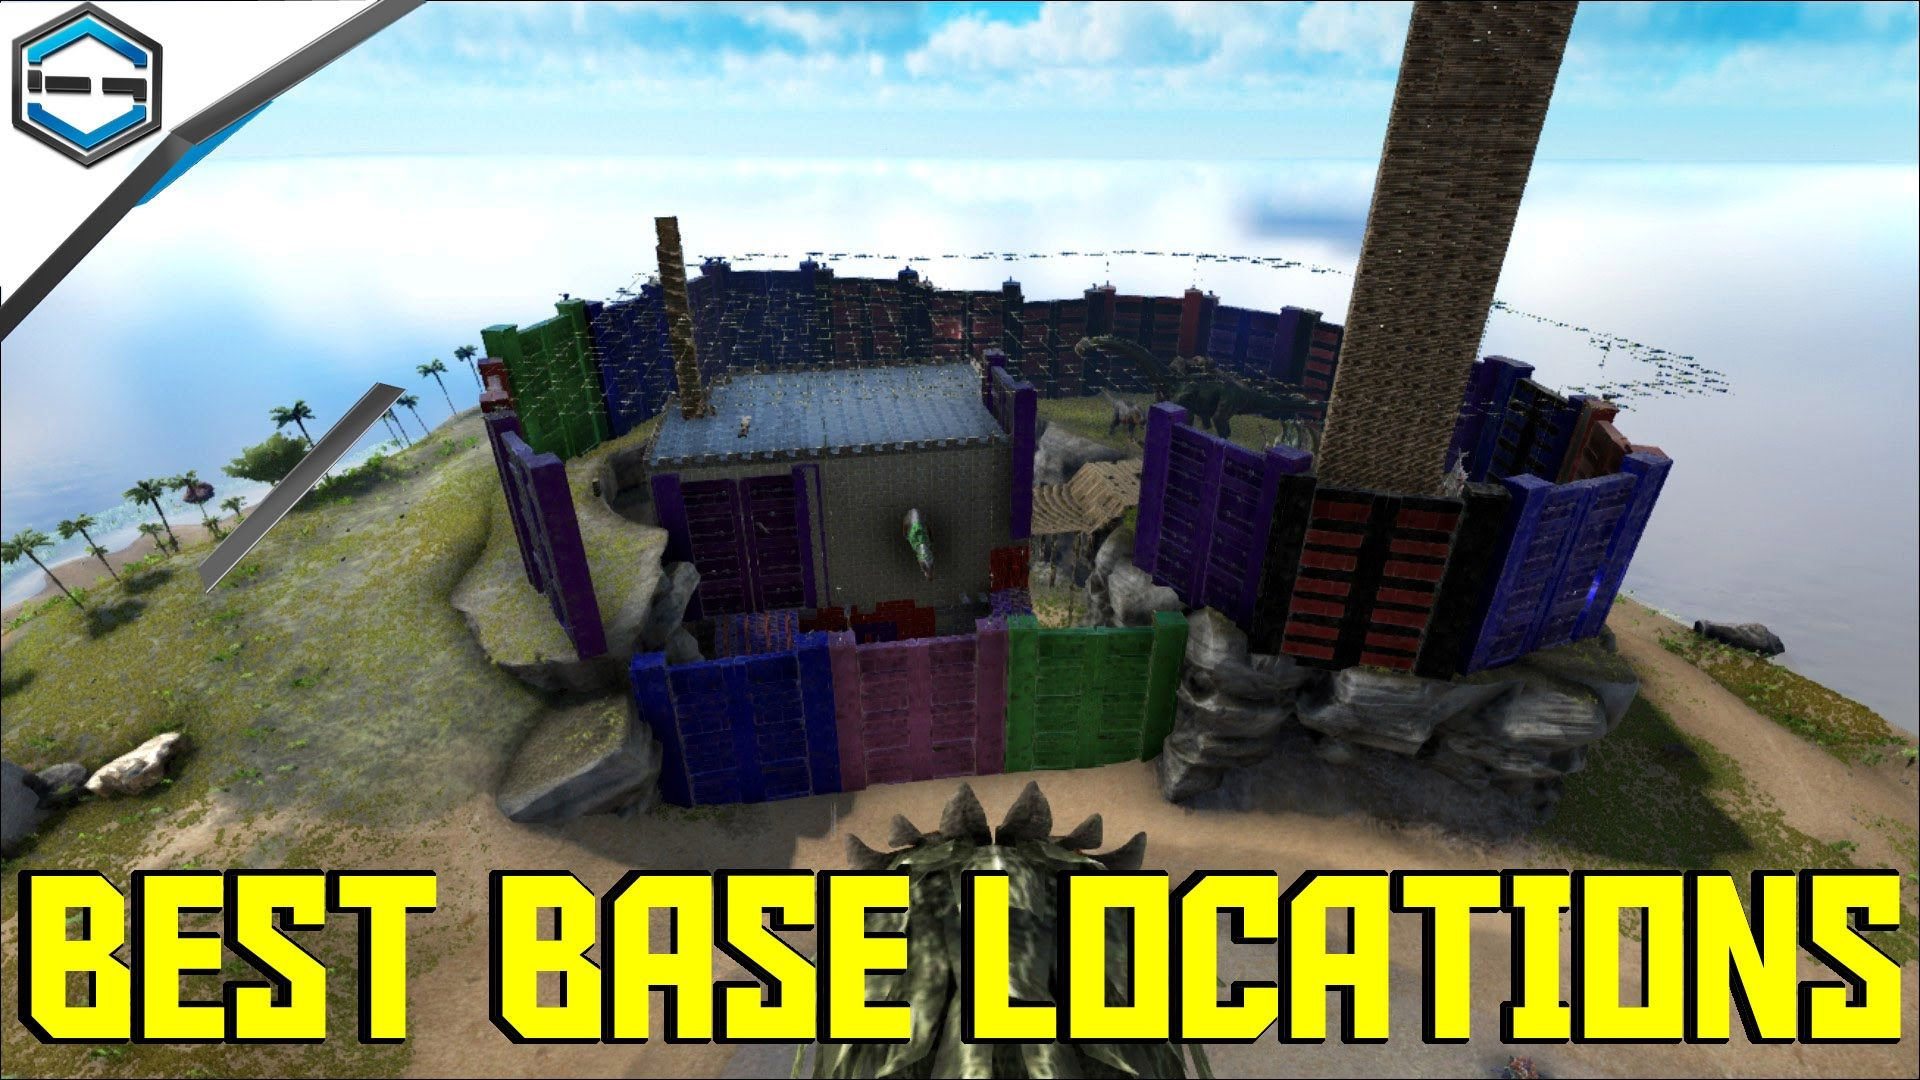 Welcome To Ark Survival Evolved Best Base Locations Here You Will See Me  Show You Some Of The Best Places To Build A Base On The Ark Map.